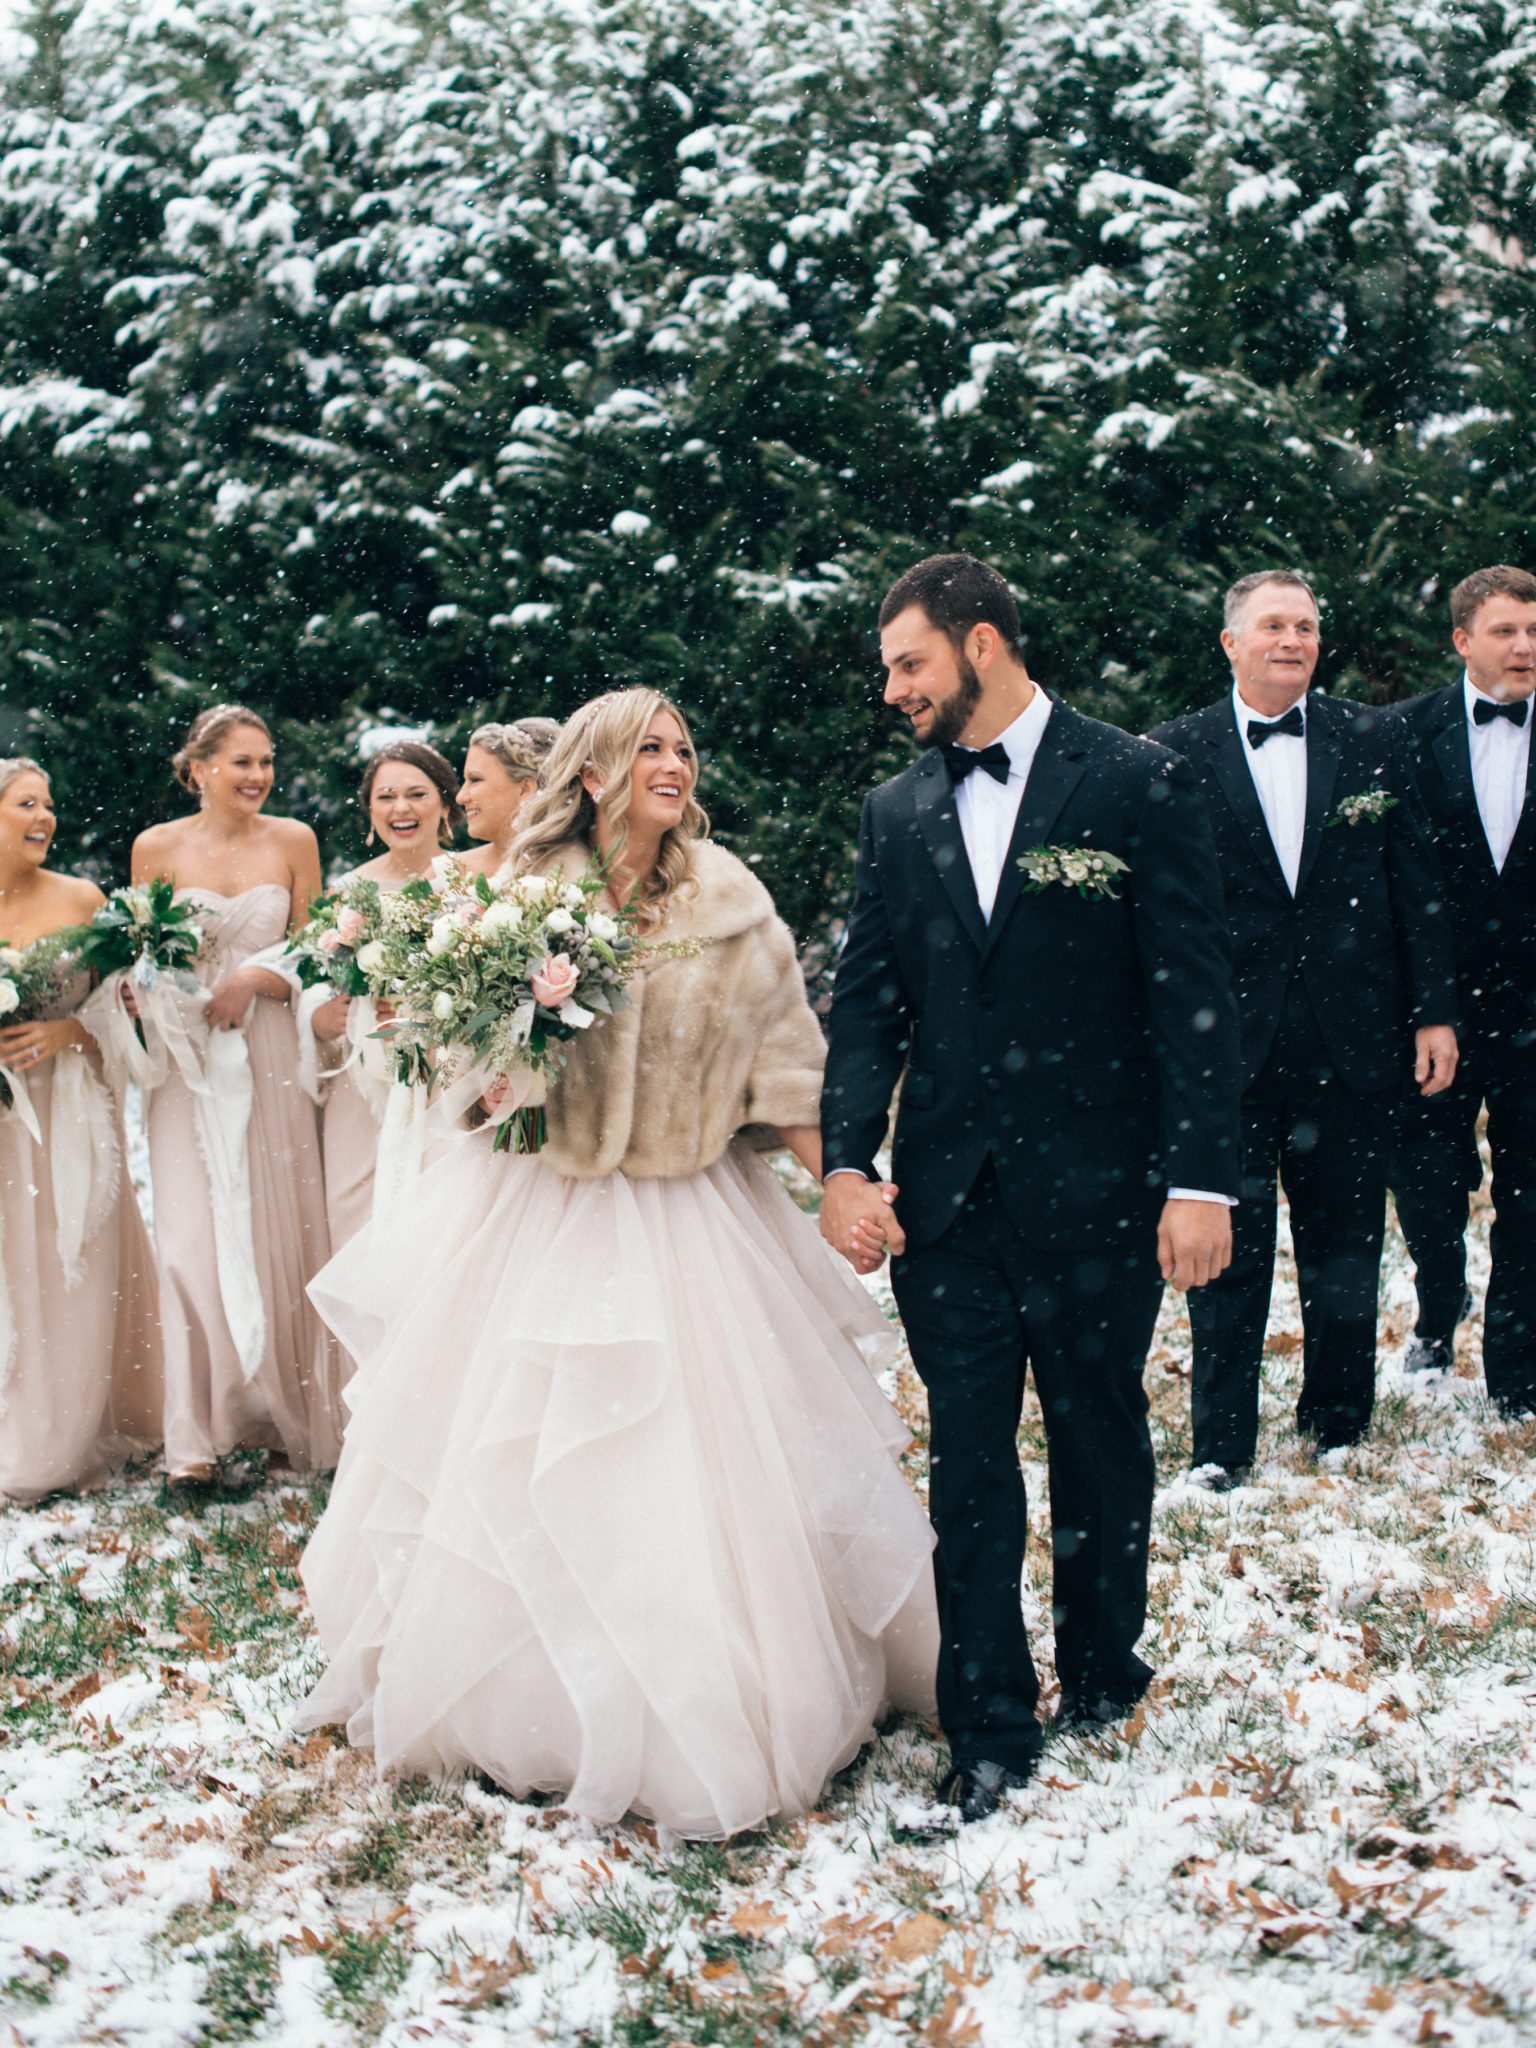 KimStockwellAshleyandMattMoraisVIneyardWedding335 Winter Weddings - A Snow Fairy Tale